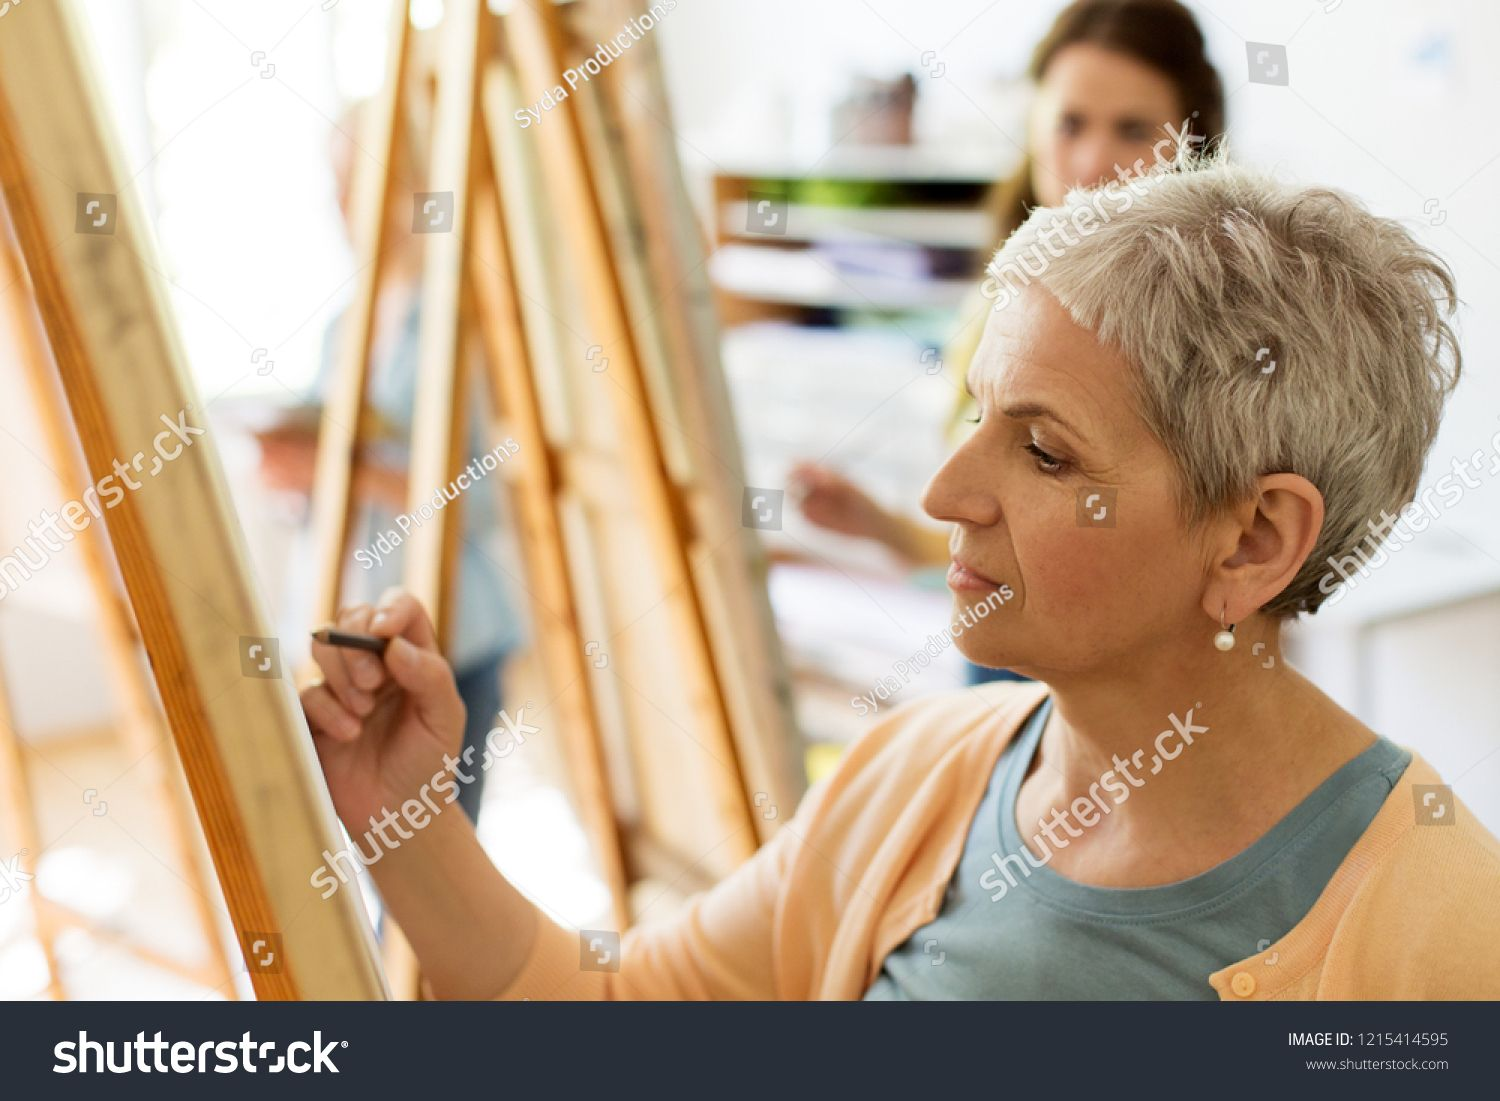 creativity, education and people concept - senior woman drawing on easel at art school studio #Ad , #Sponsored, #concept#senior#people#creativity